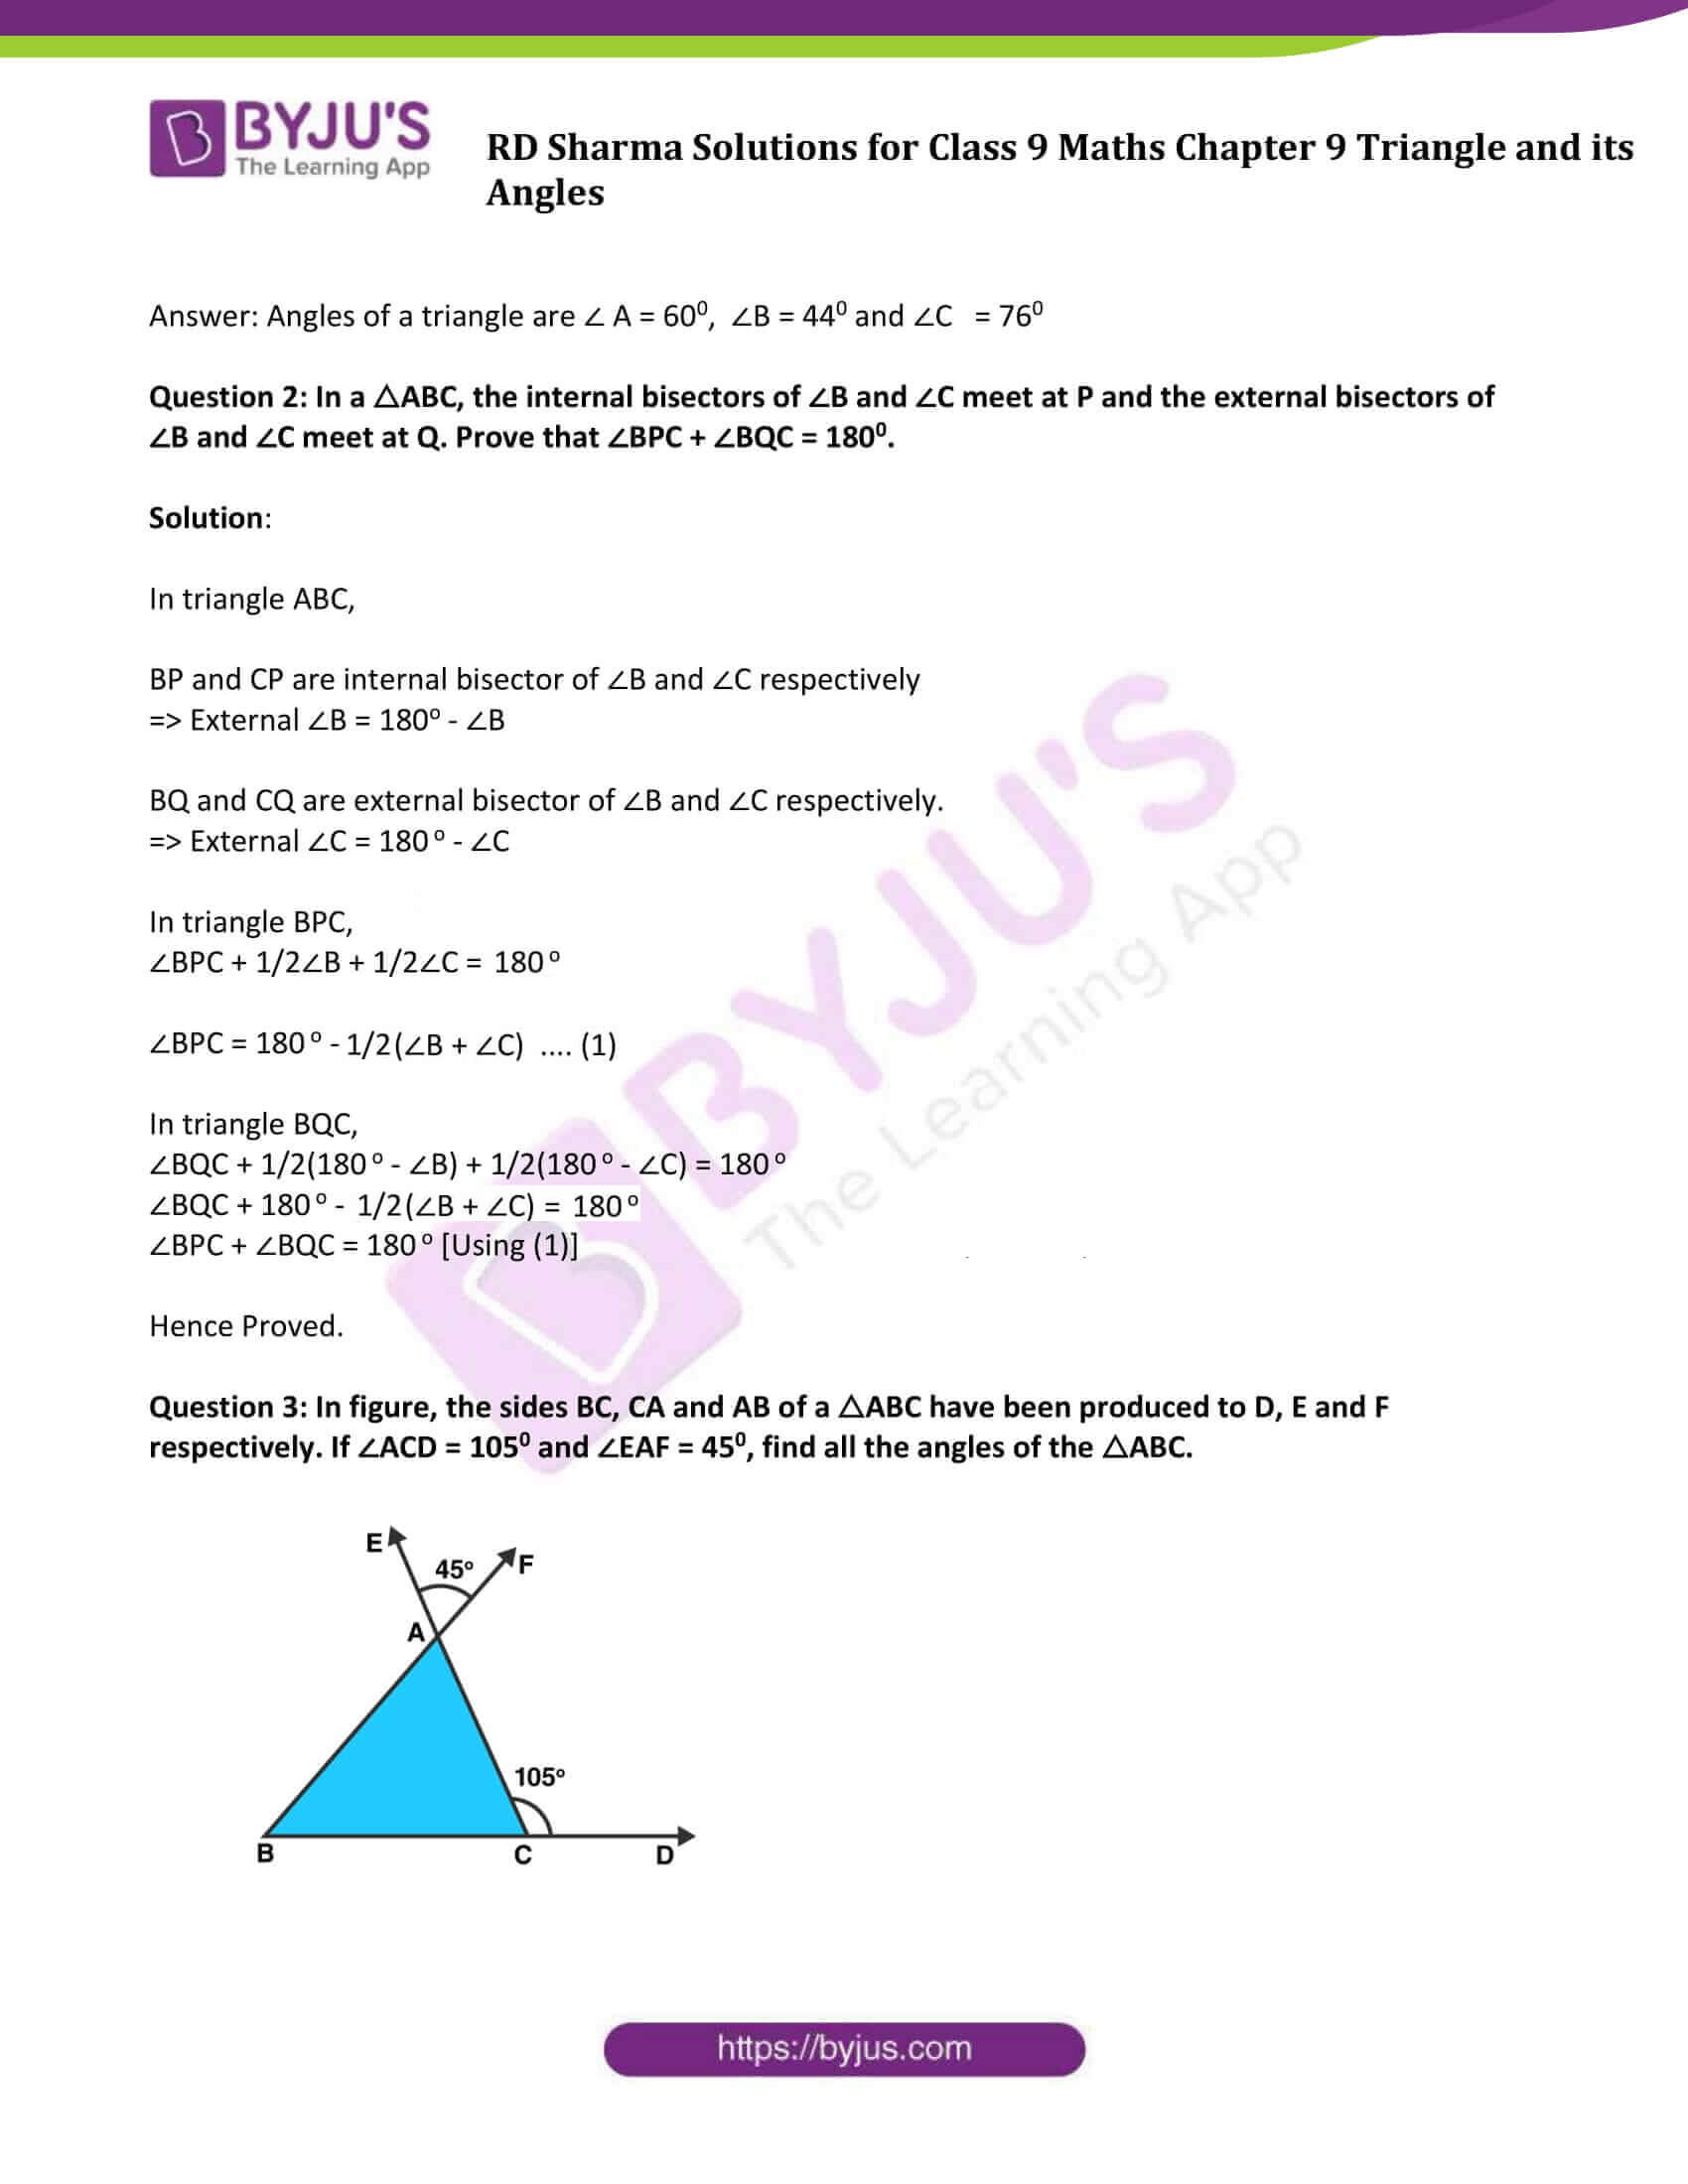 RD Sharma Solution class 9 Maths Chapter 9 Triangle and its Angles 06